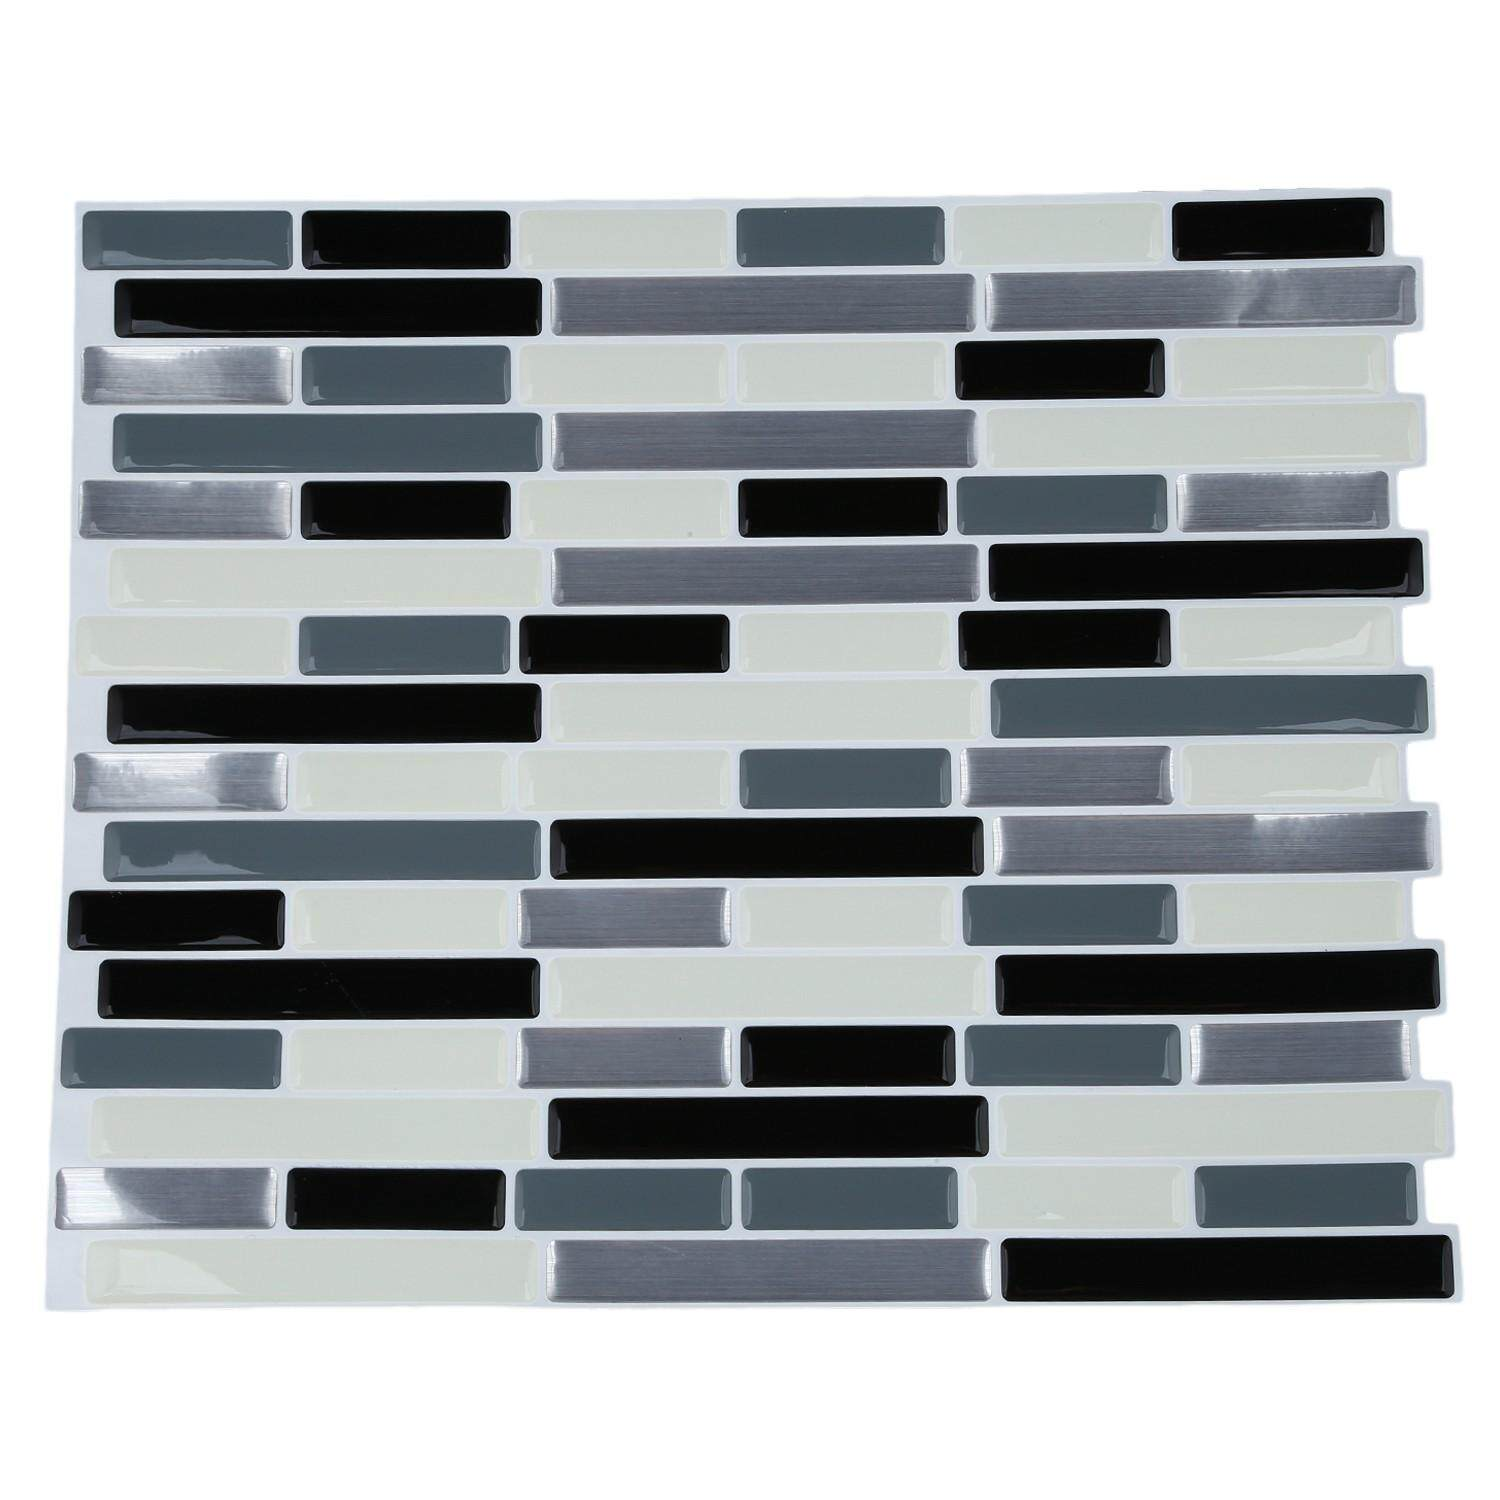 3D Tile Mosaic Pattern Wallpaper Modern Wall Background LivingRoom Kitchen DecorPattern:#10 235Mm X285mm X1mm